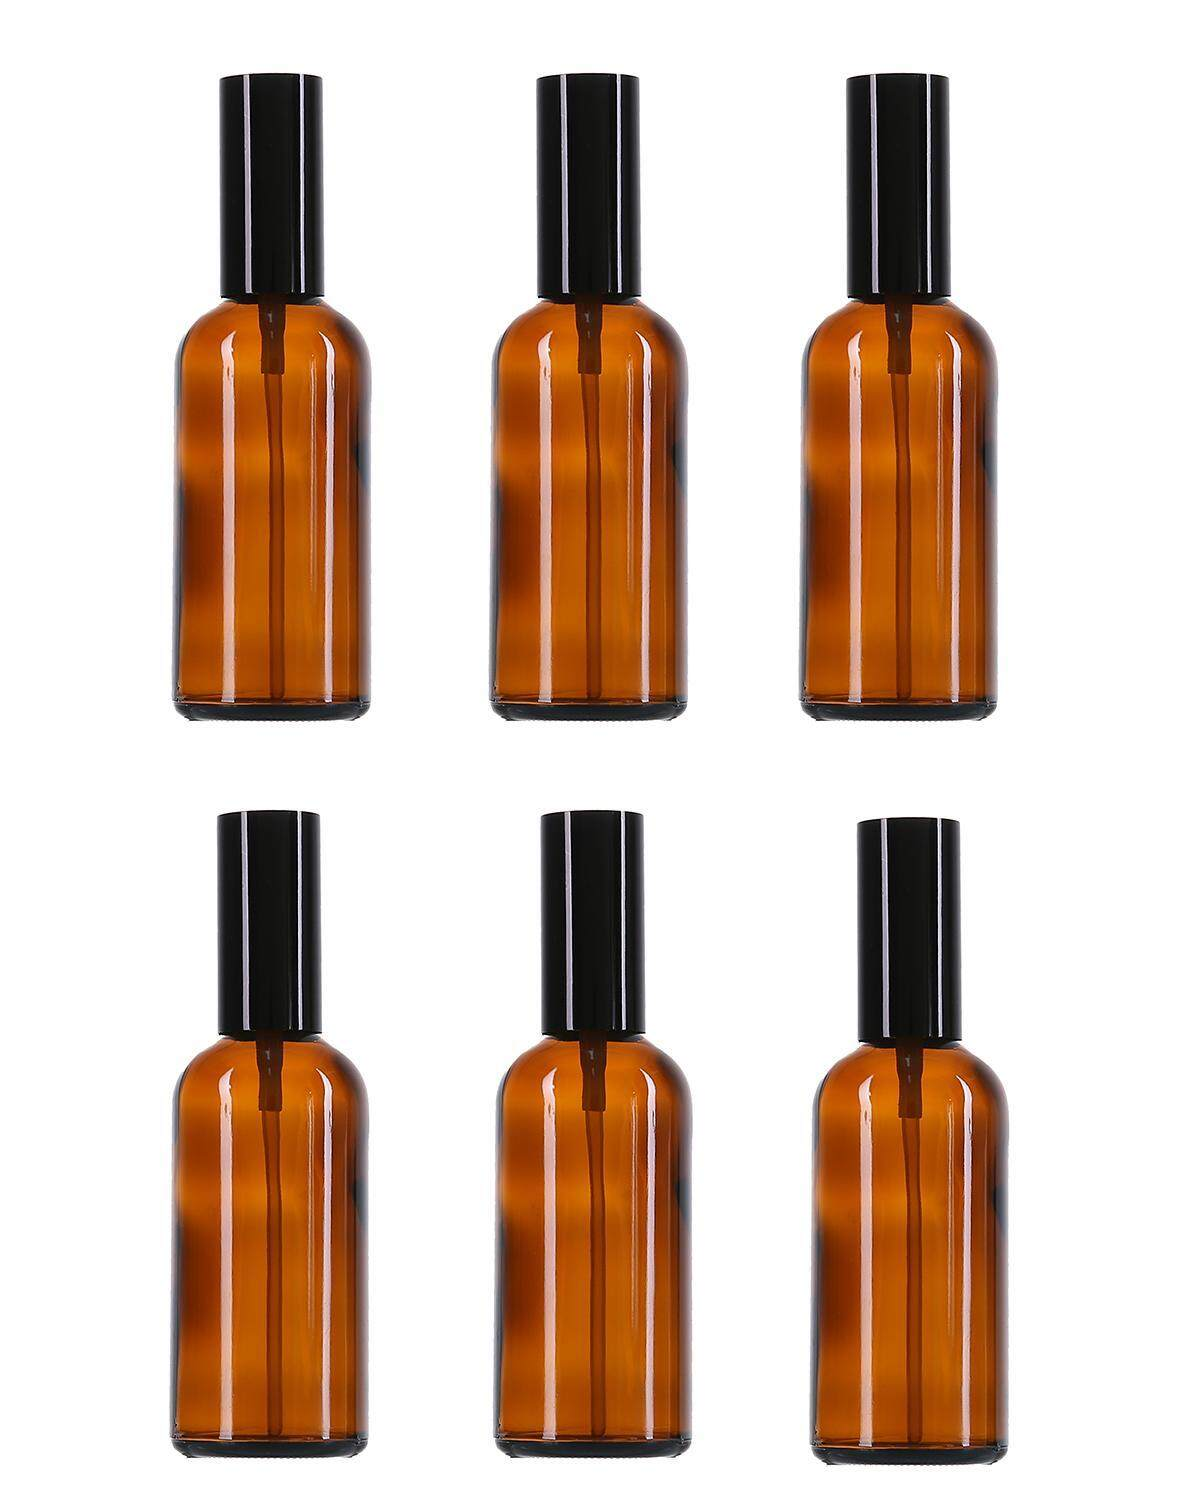 yuwen 6 Pcs Amber Glass Spray Bottles,3.4 Oz (100ml) With Plastic Black Fine Mist Sprayers, Dust Caps-Perfect For Various Dilutions Of Liquid - intl